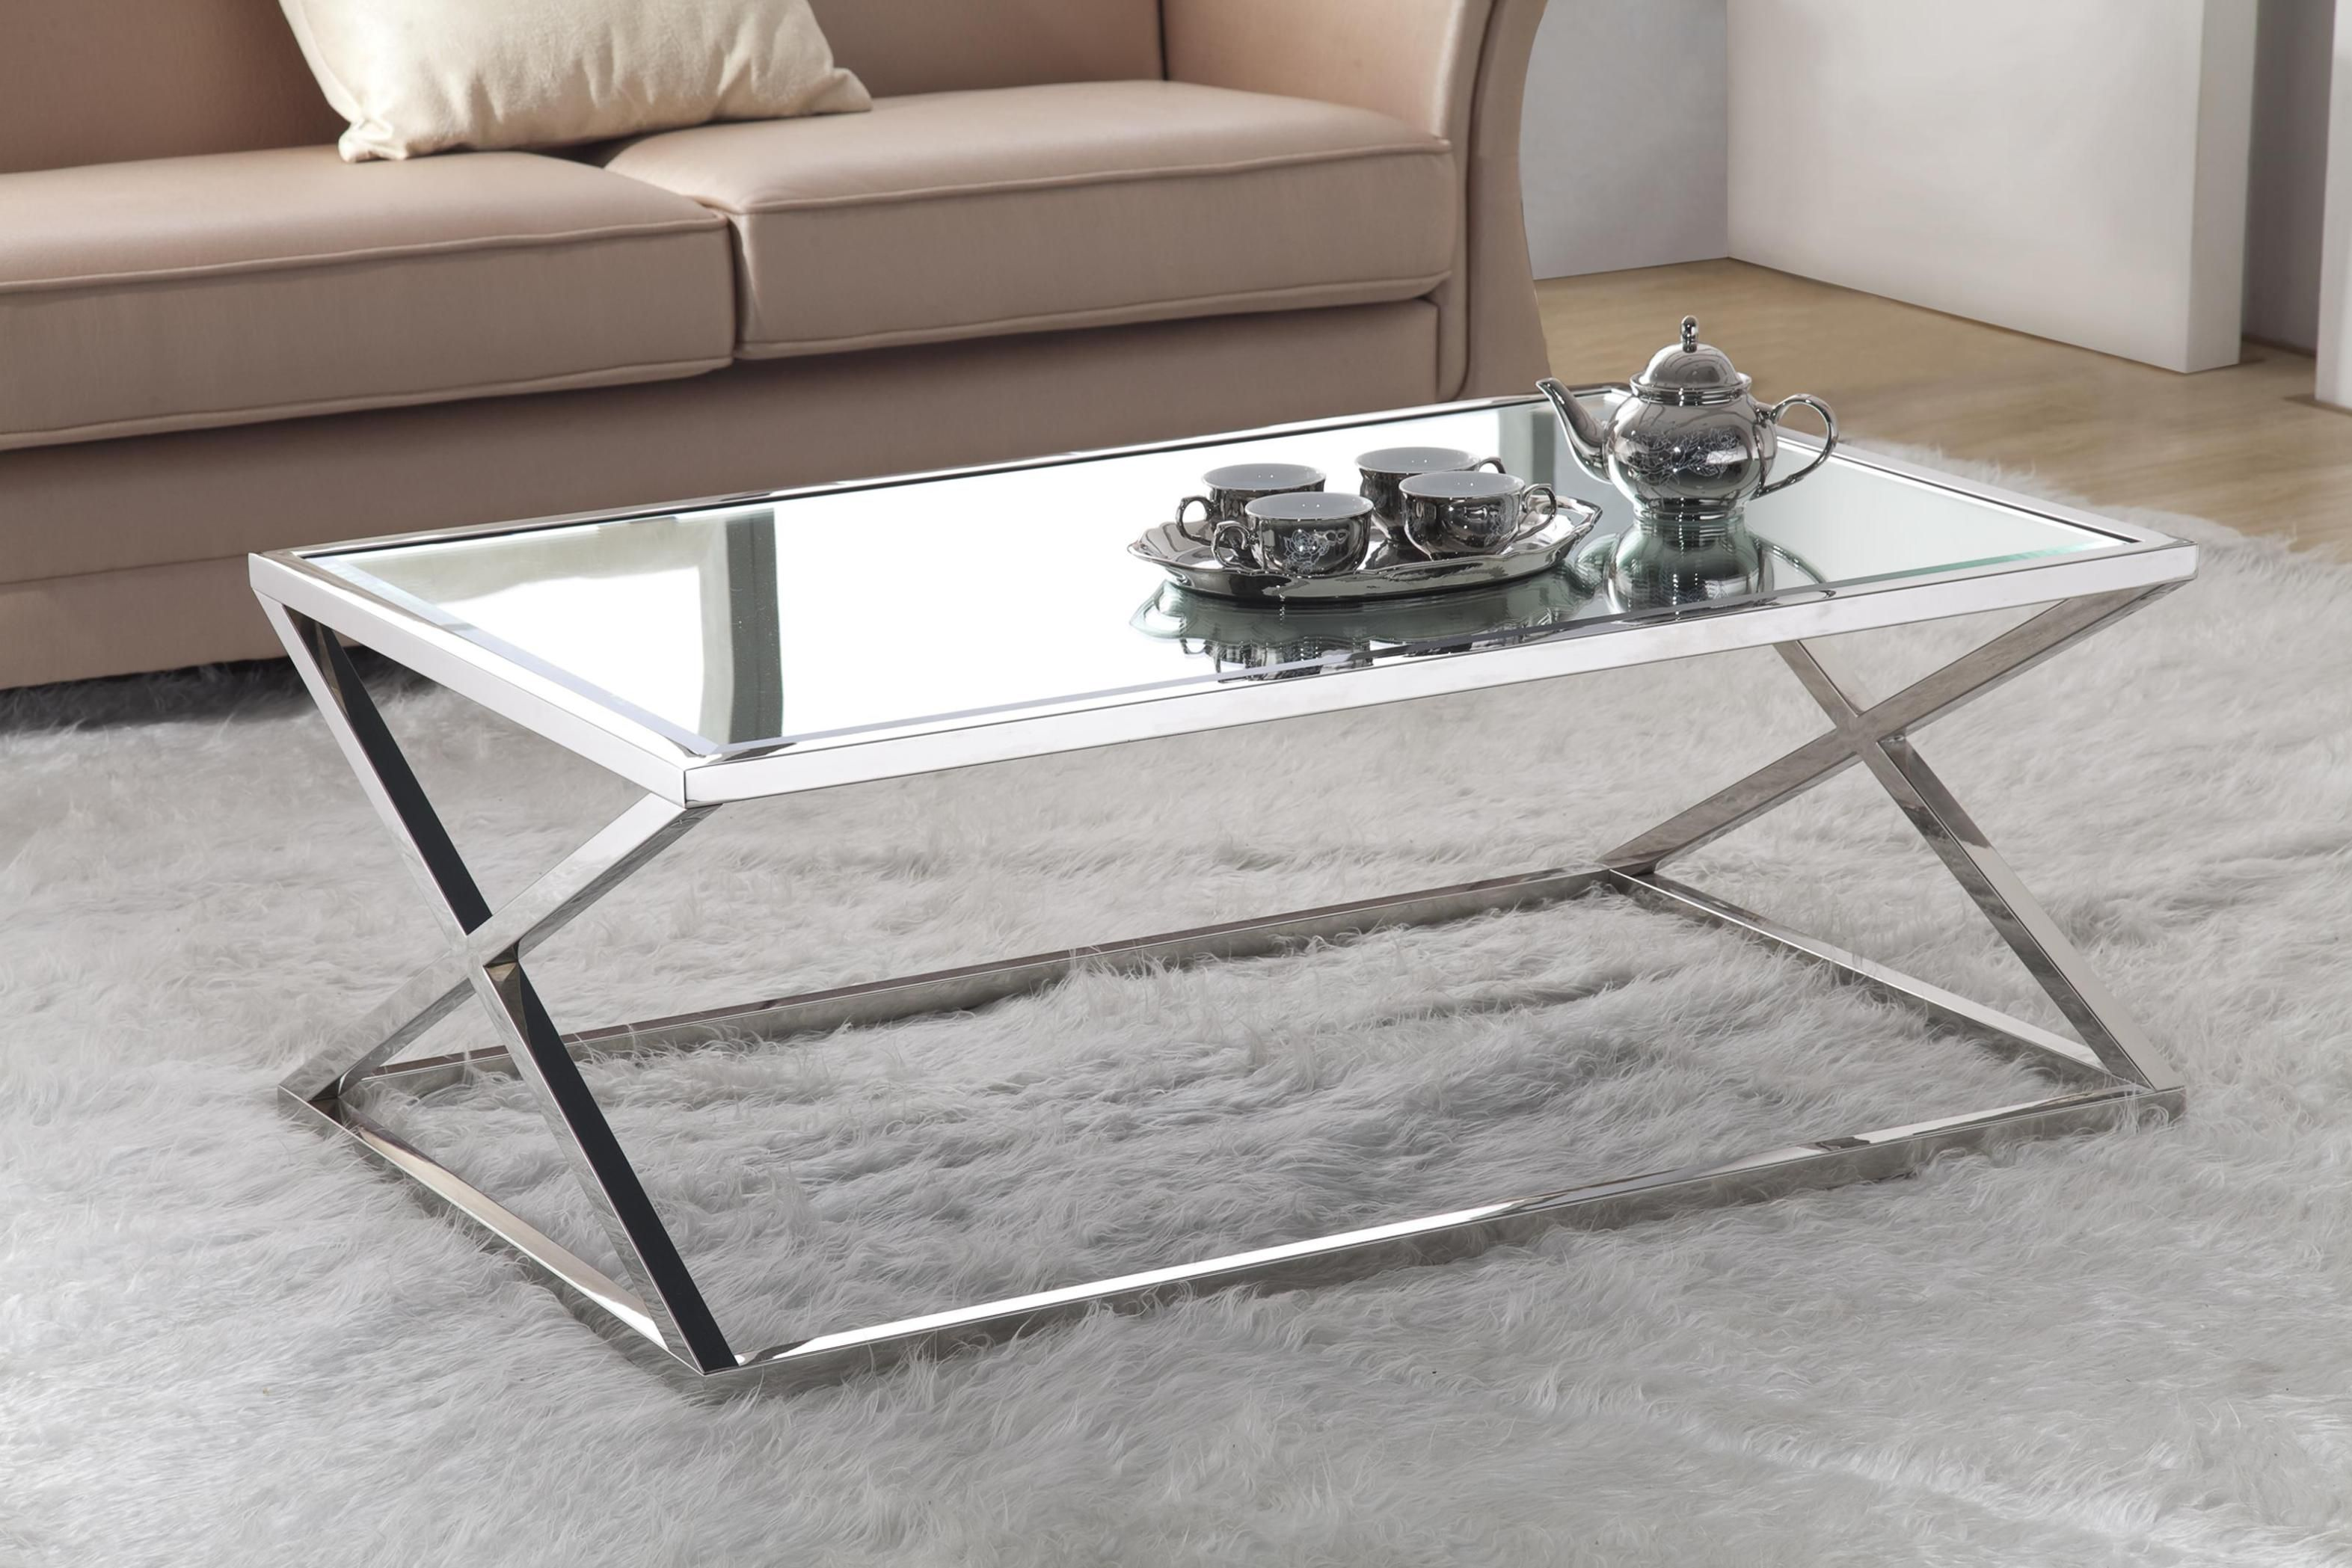 Amazing Stainless Steel Coffee Table httpwwwolebrasilfccom